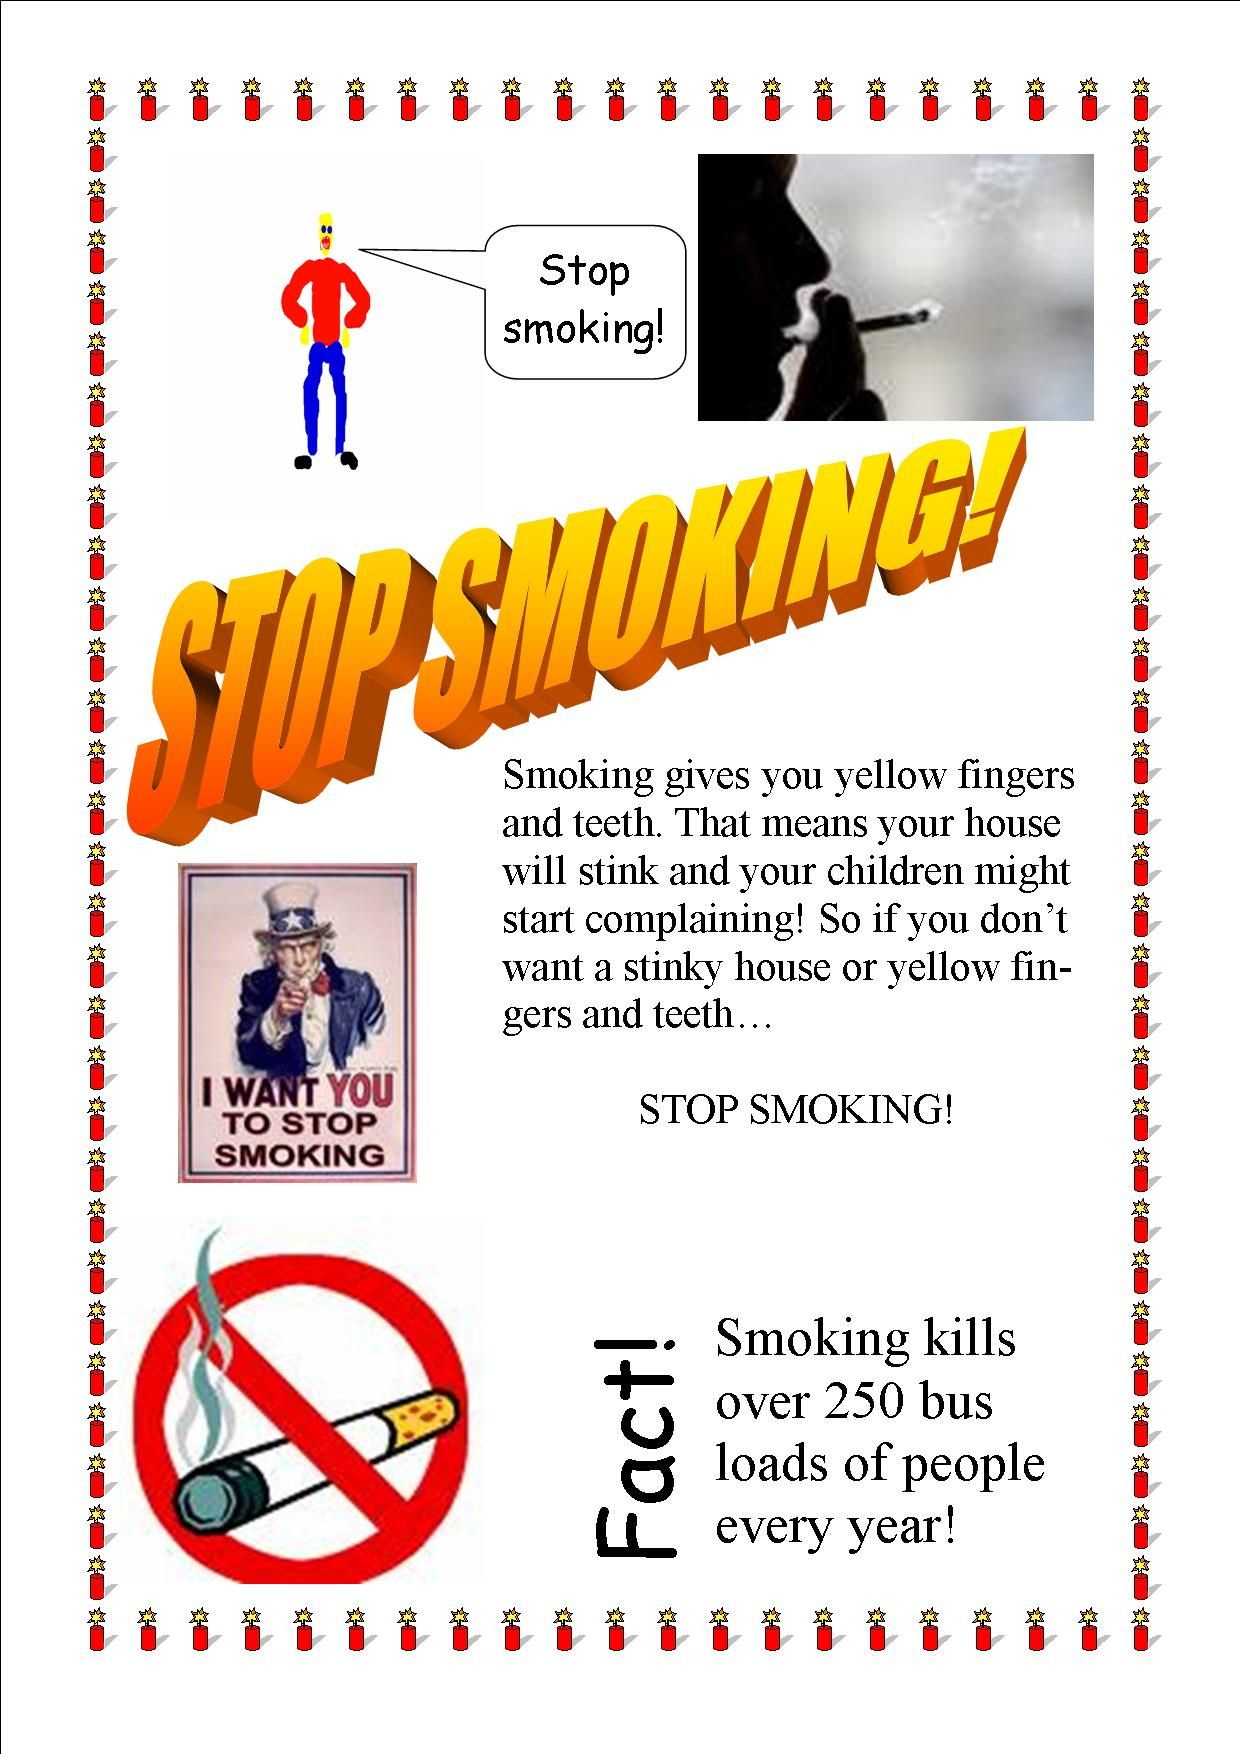 Stop Smoking Today! | Proposal to Cig Smokers